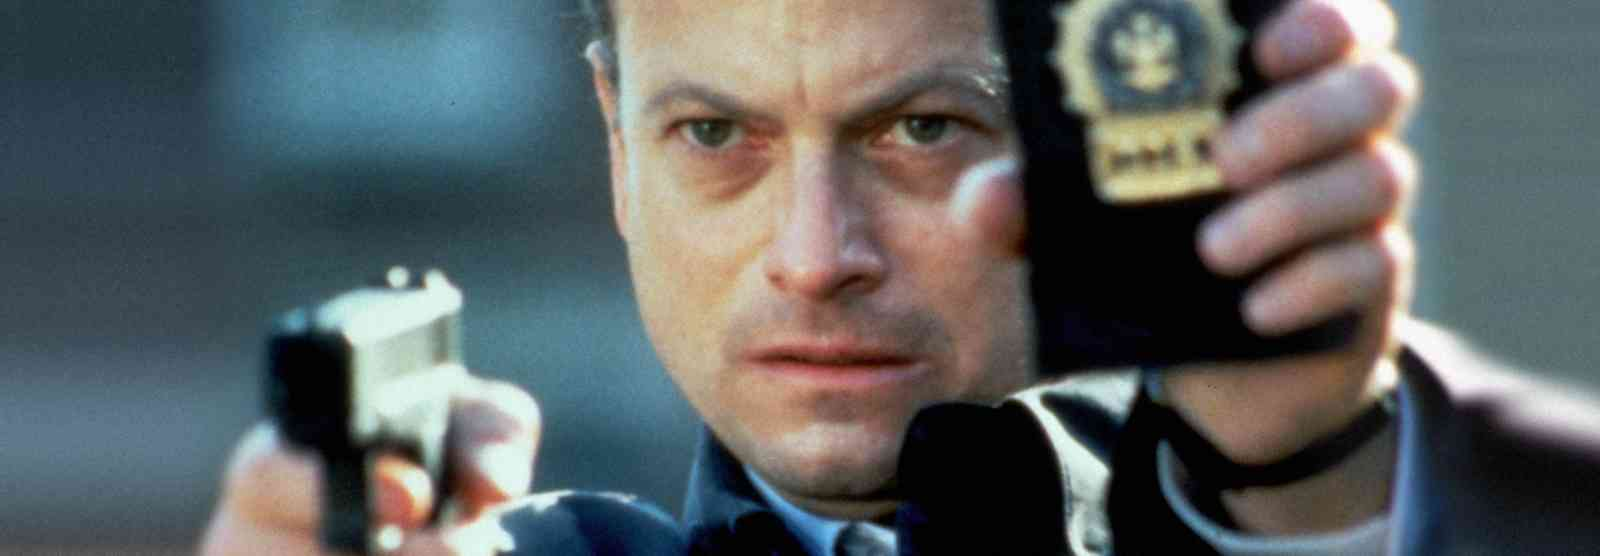 Gary Sinise as Detective Jimmy Shaker in Ransom